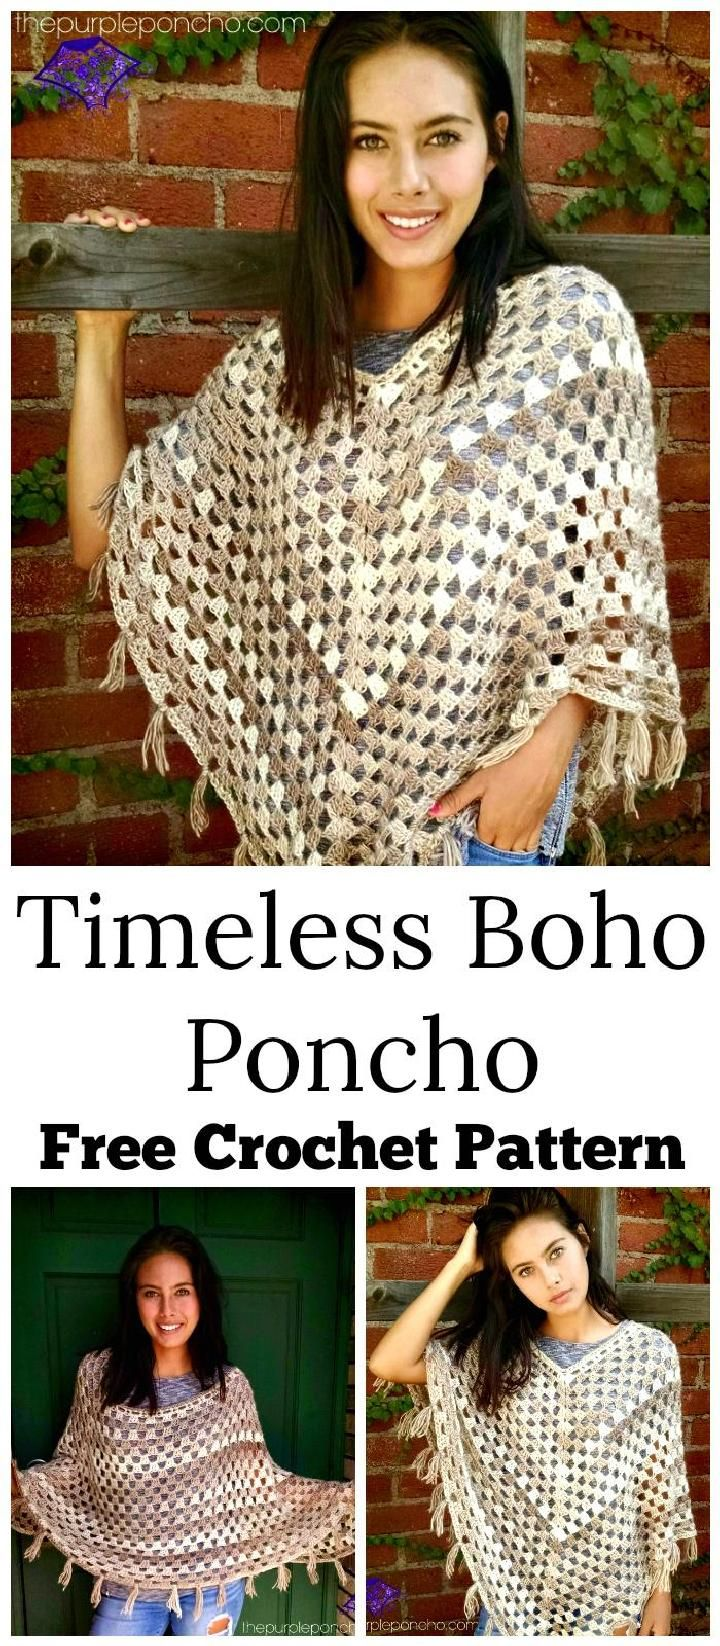 20 free crochet summer poncho patterns for womens crochet crochet timeless boho poncho 20 free crochet summer poncho patterns for womens diy bankloansurffo Images